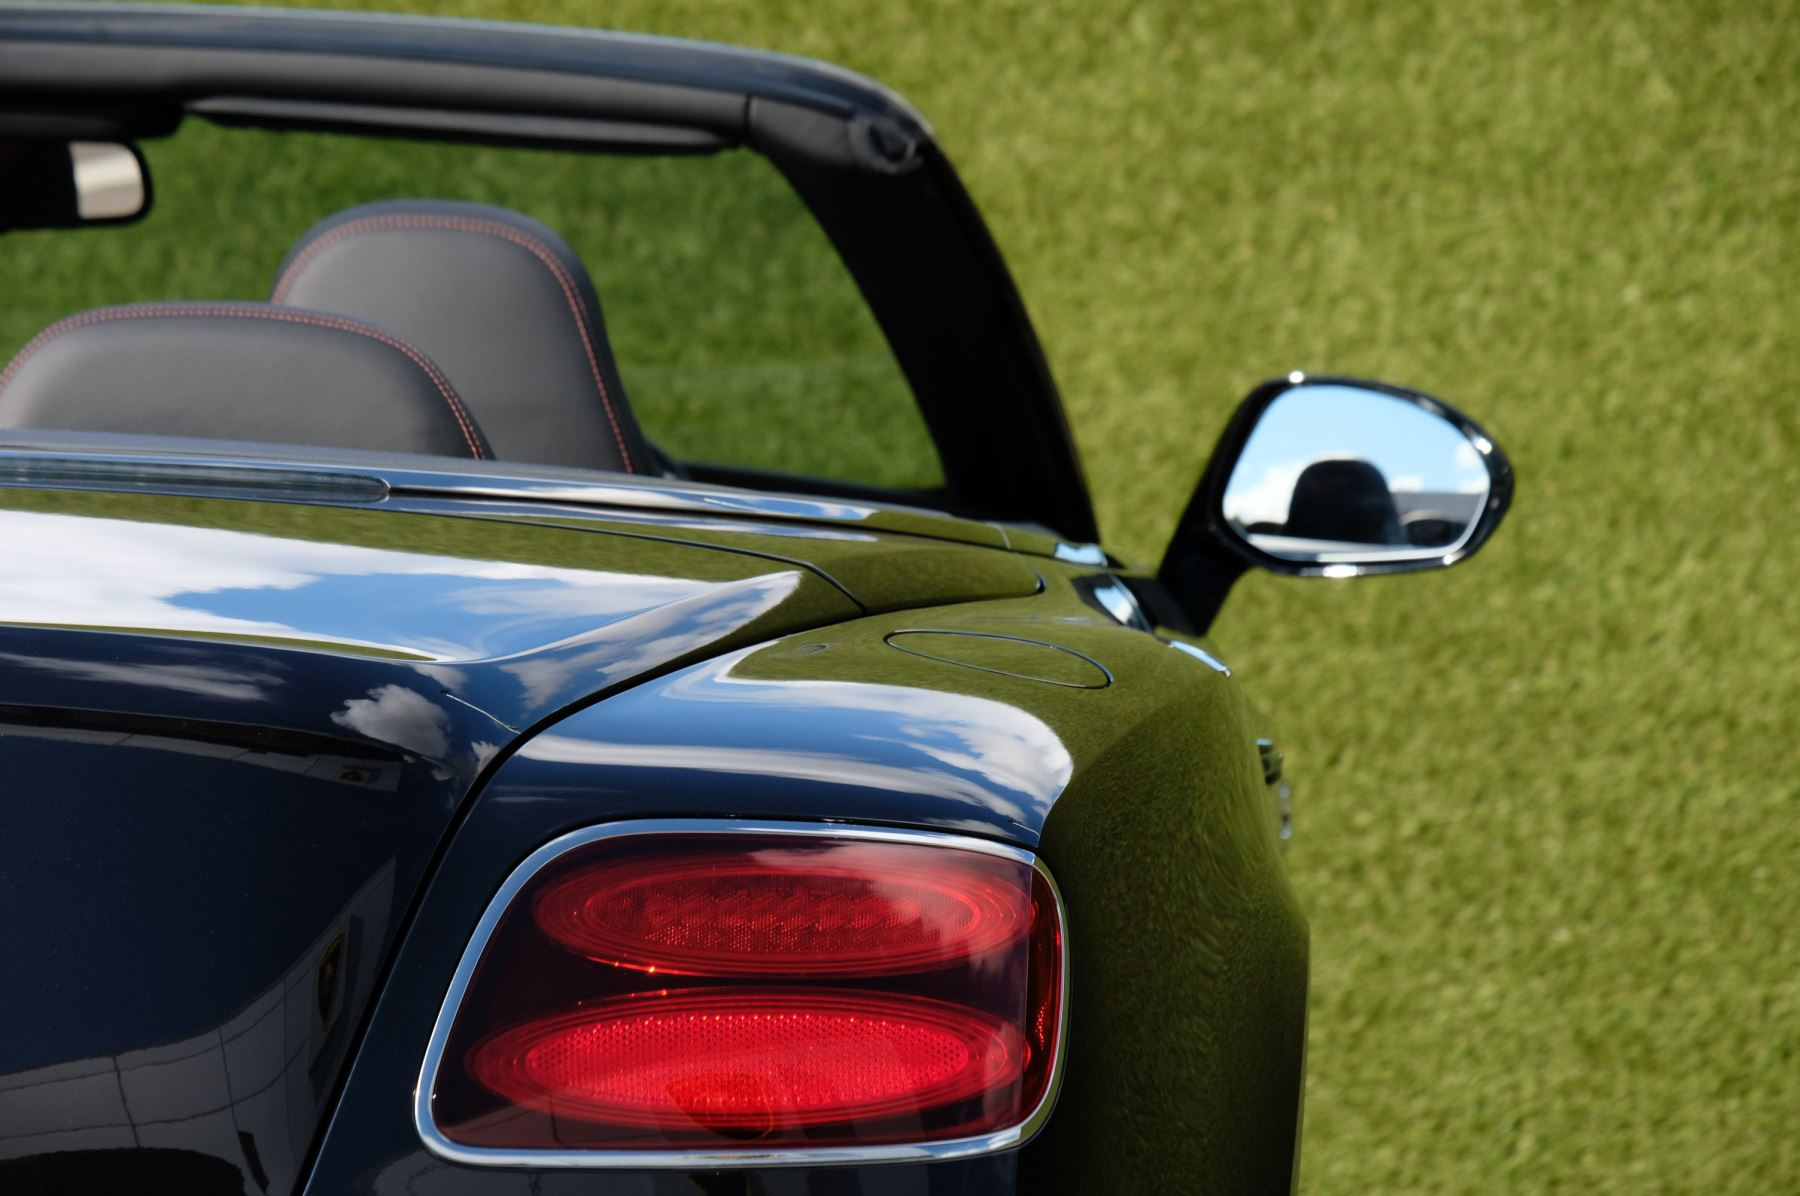 Bentley Continental GTC 4.0 V8 S - Mulliner Driving Spec - Sports Exhaust image 8